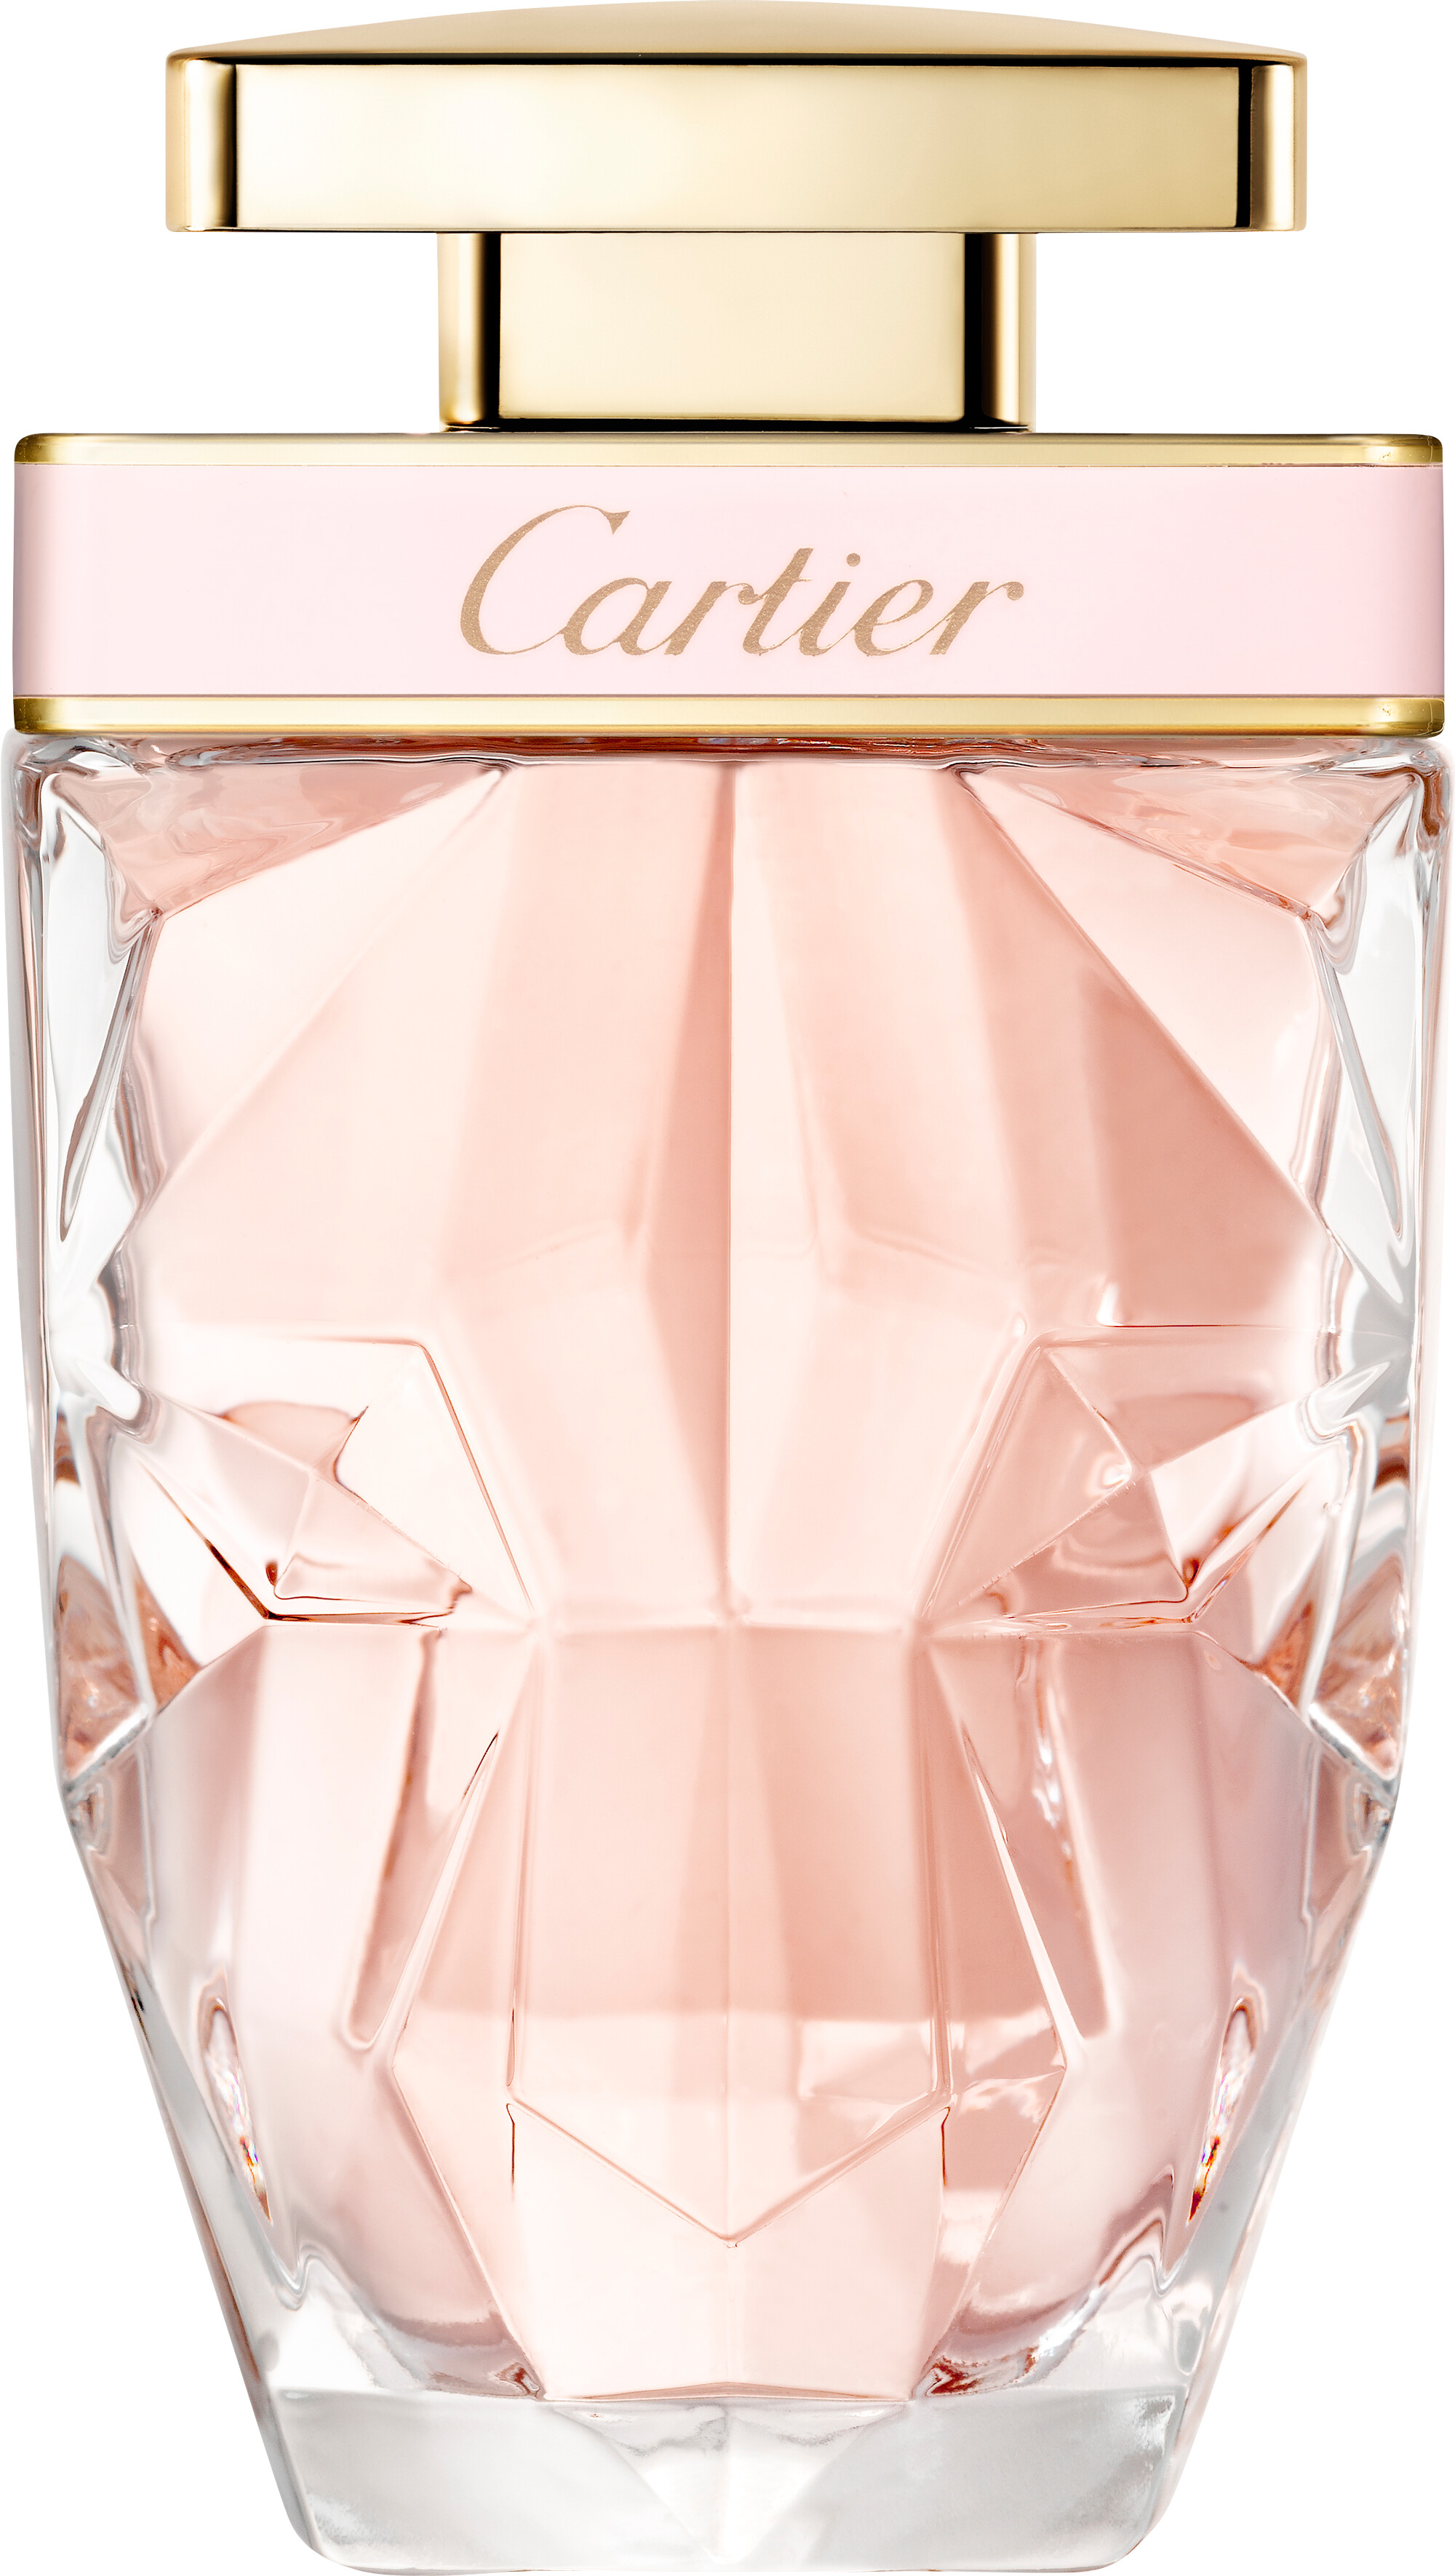 La Panthere Eau Toilette De Cartier Spray kiZuXP